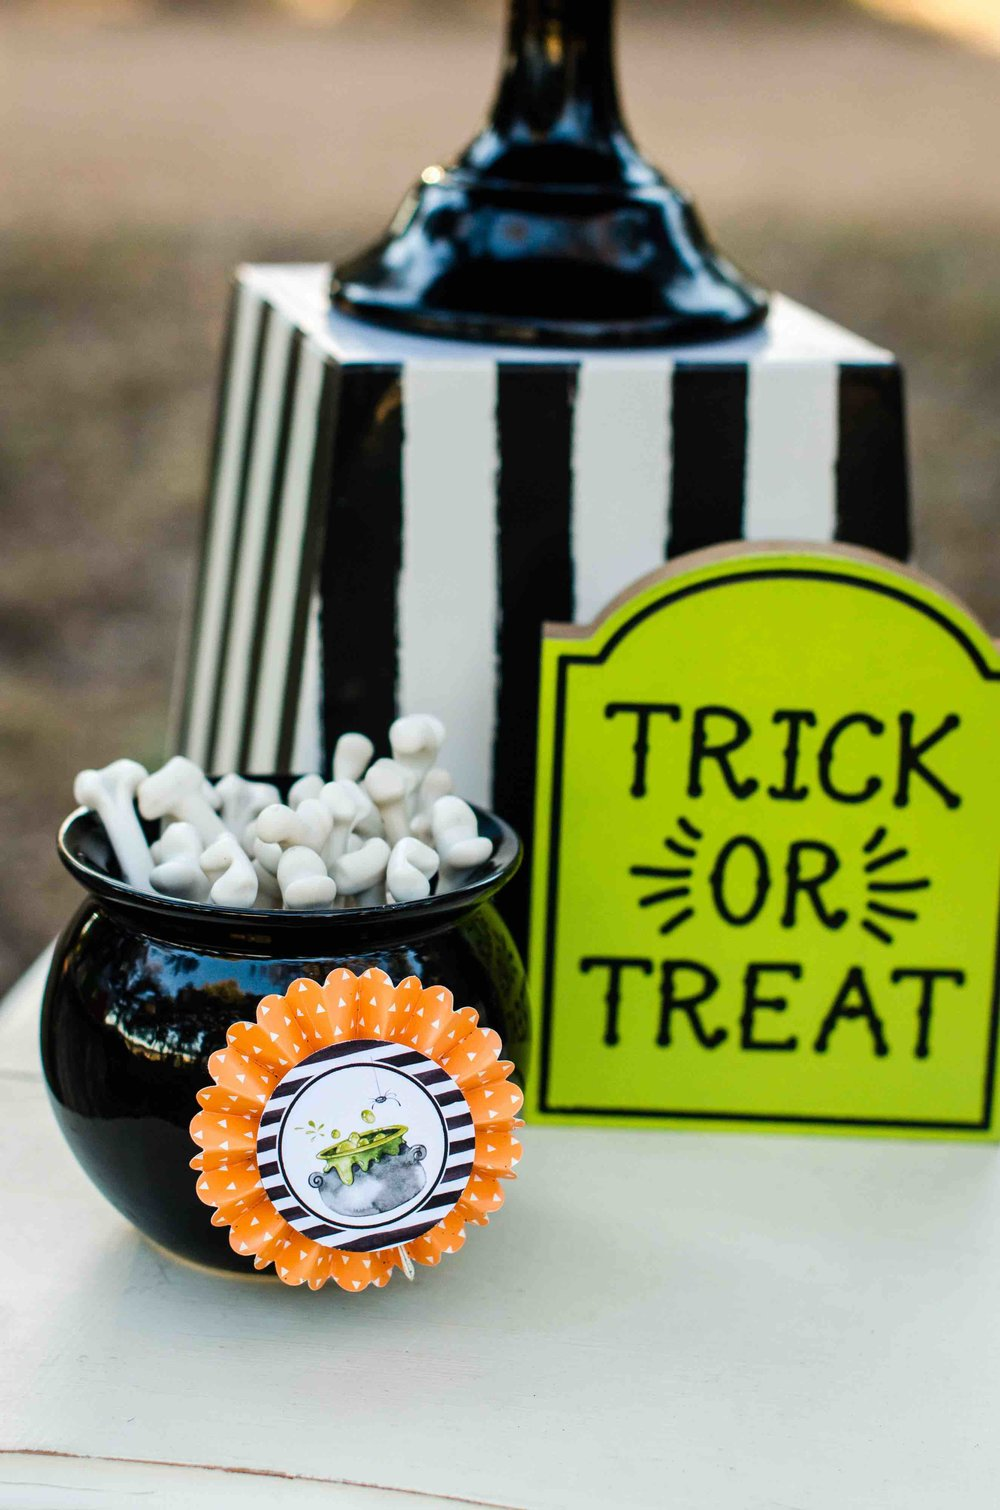 Trick or Treat, these Halloween Candy Bones are the perfect choice for displaying in a plastic cauldron on your Halloween Dessert Table. Click to see all the Halloween Party Ideas that you can re-create for your very own Halloween Kids Party. Styled by party stylist Mint Event Design. #halloween #partyideas #partyinspiration #partydecor #halloweencandy #desserttable #halloweendecorations